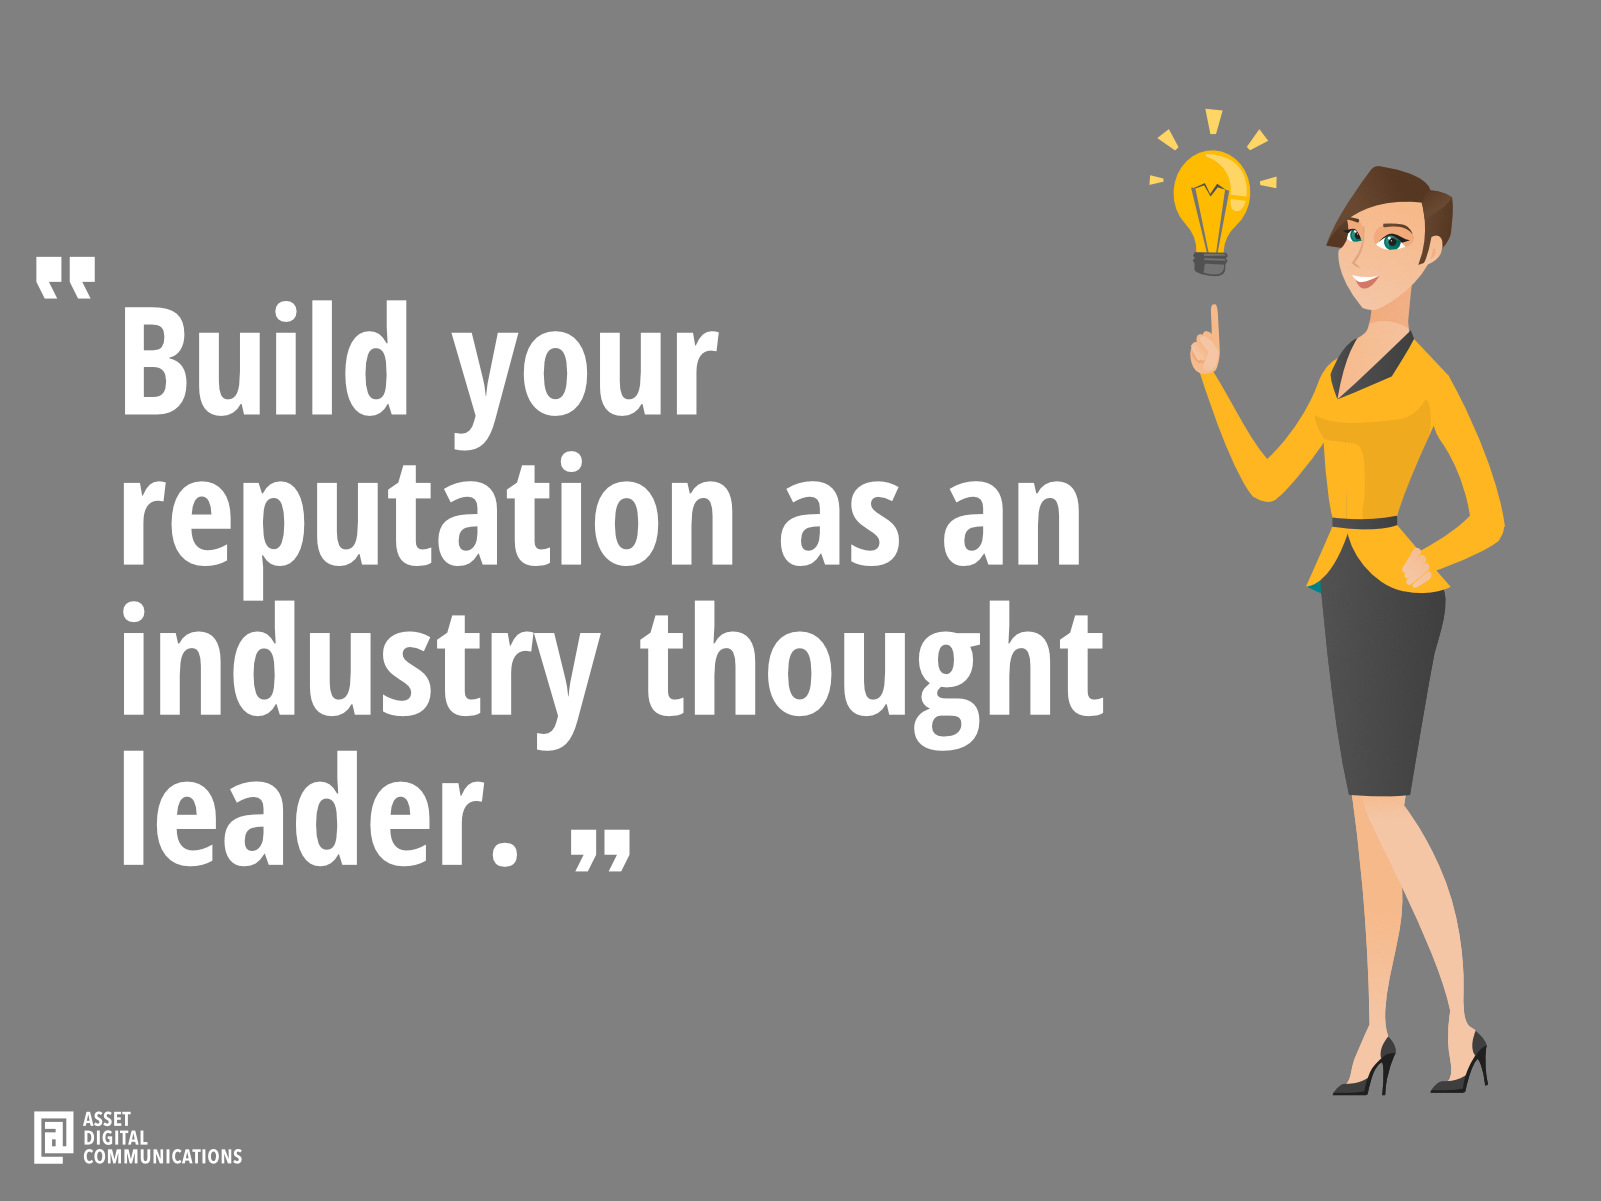 Use content to build your industry reputation